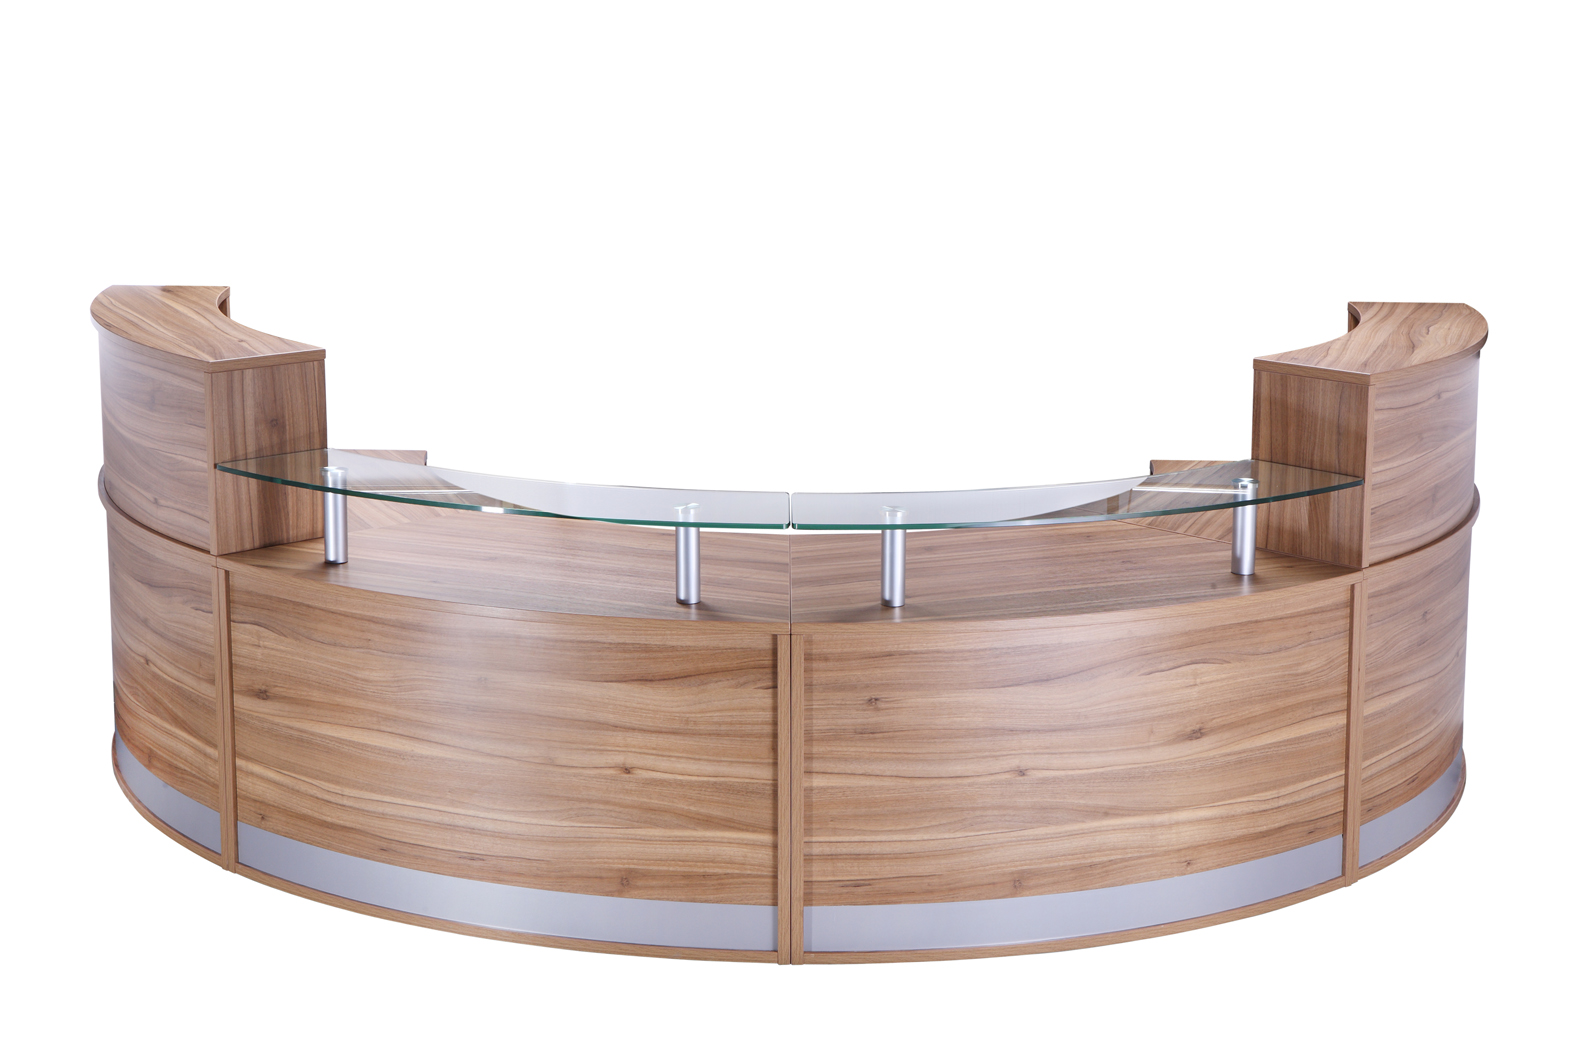 office reception counters. Reception Desks | Office Furniture, Chairs, Supplies In Dublin Ireland OfficeThinsInteriors.ie Counters